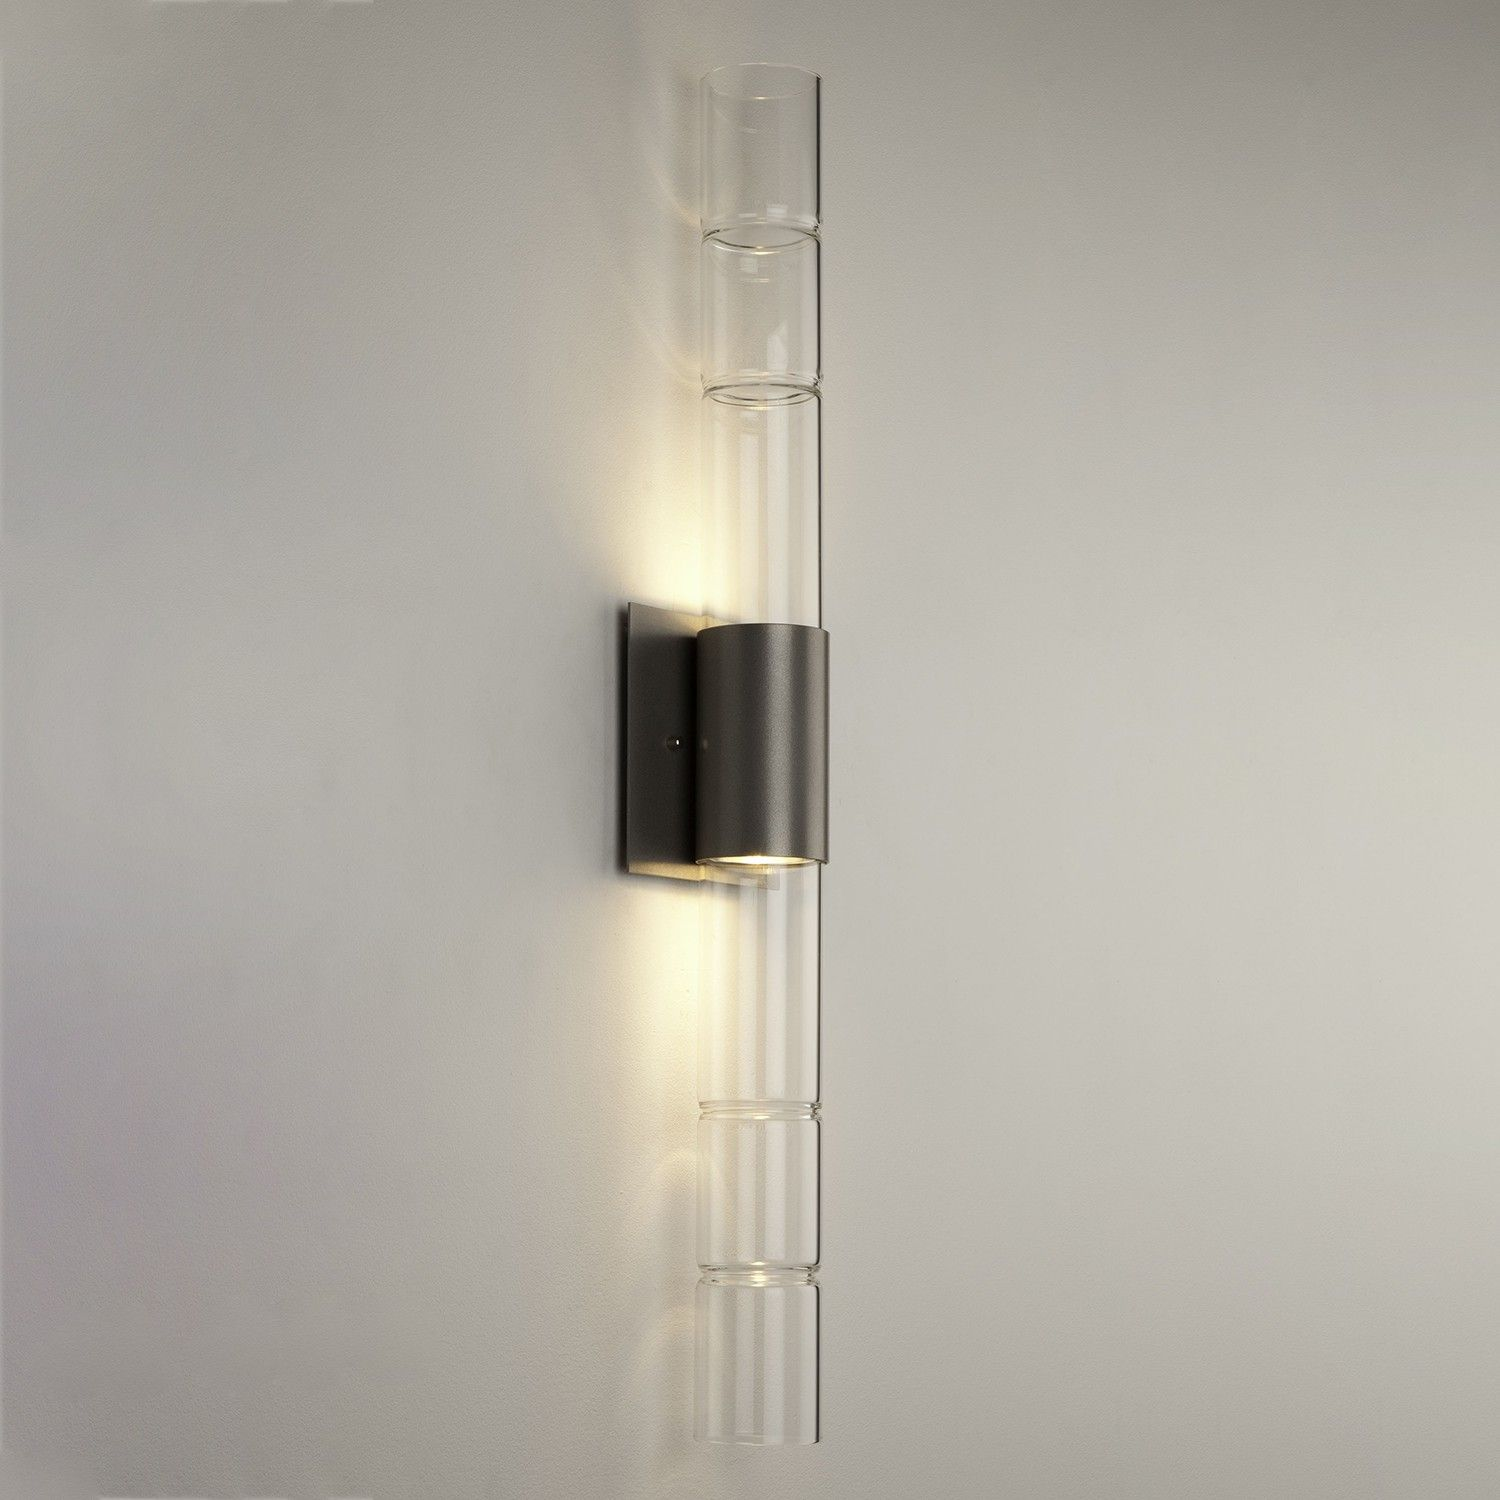 Bamboo Double Wall Sconce Wall Sconces Walls And Bathroom Light Bar - Double wall sconce bathroom